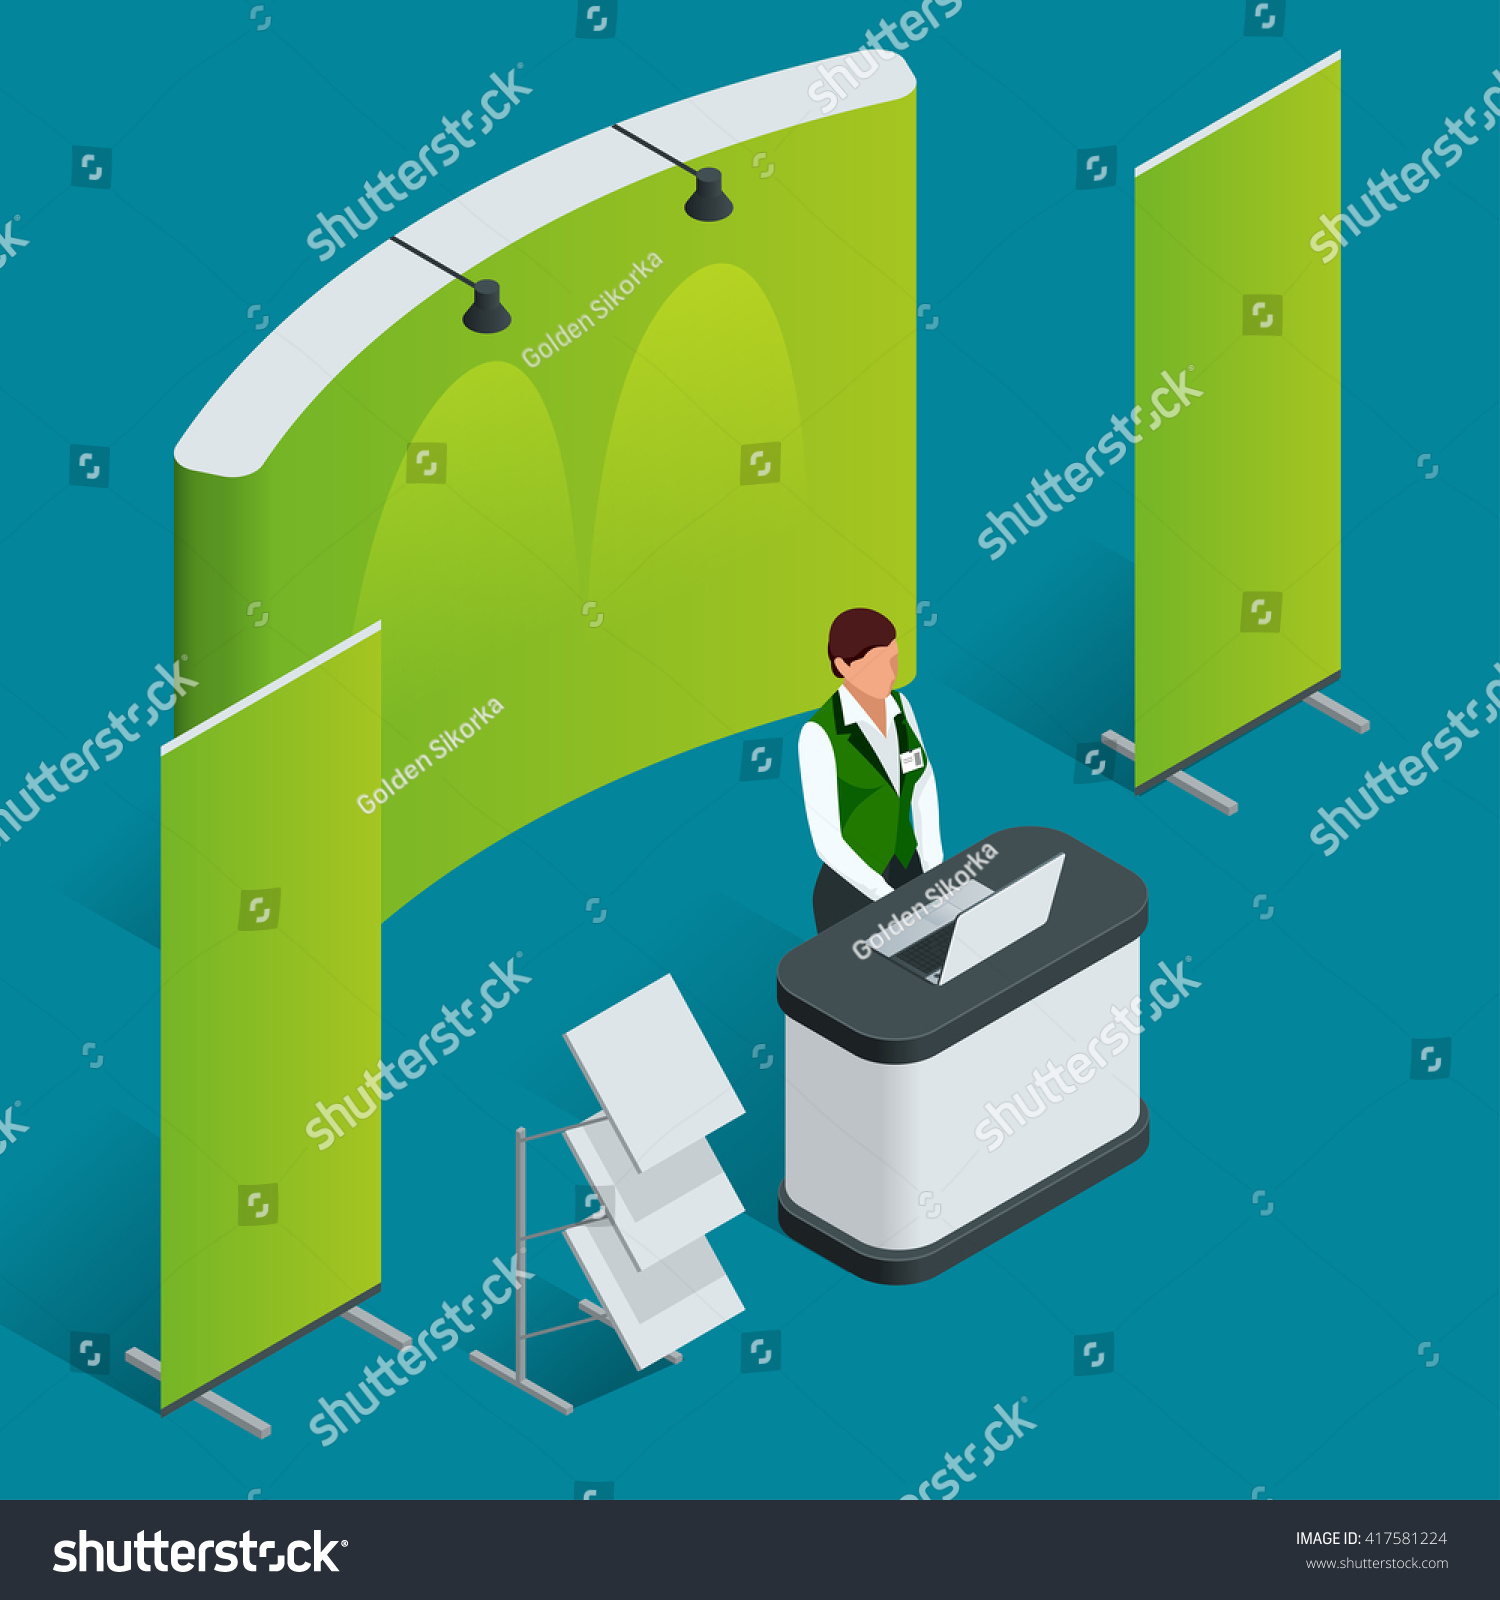 Fabric Exhibition Stand Vector : Isometric exhibition stand trade show booth stock vector